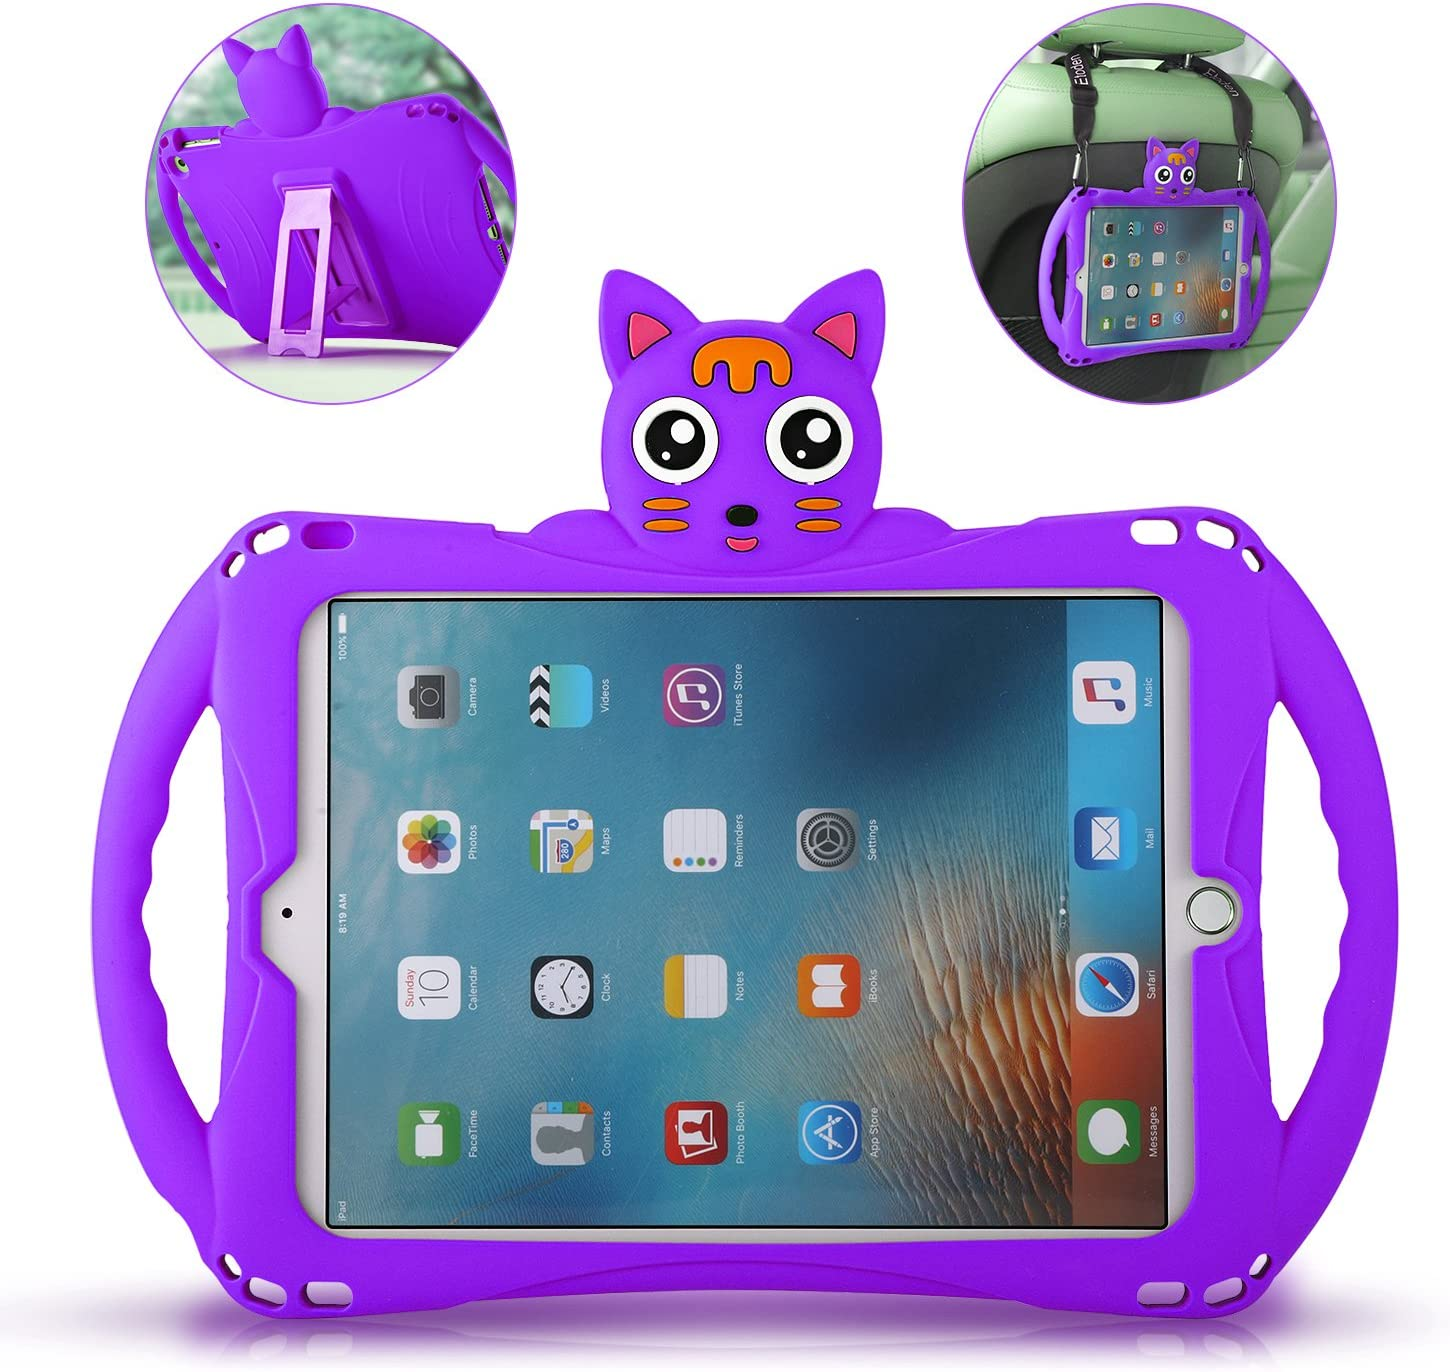 iPad Air Case with Adjustable Shoulder Strap,Etoden Cute Shockproof Silicone Handle Stand Case Cover for iPad 2017/2018 9.7 inch (Apple iPad 5th/6th Gen) and iPad Air